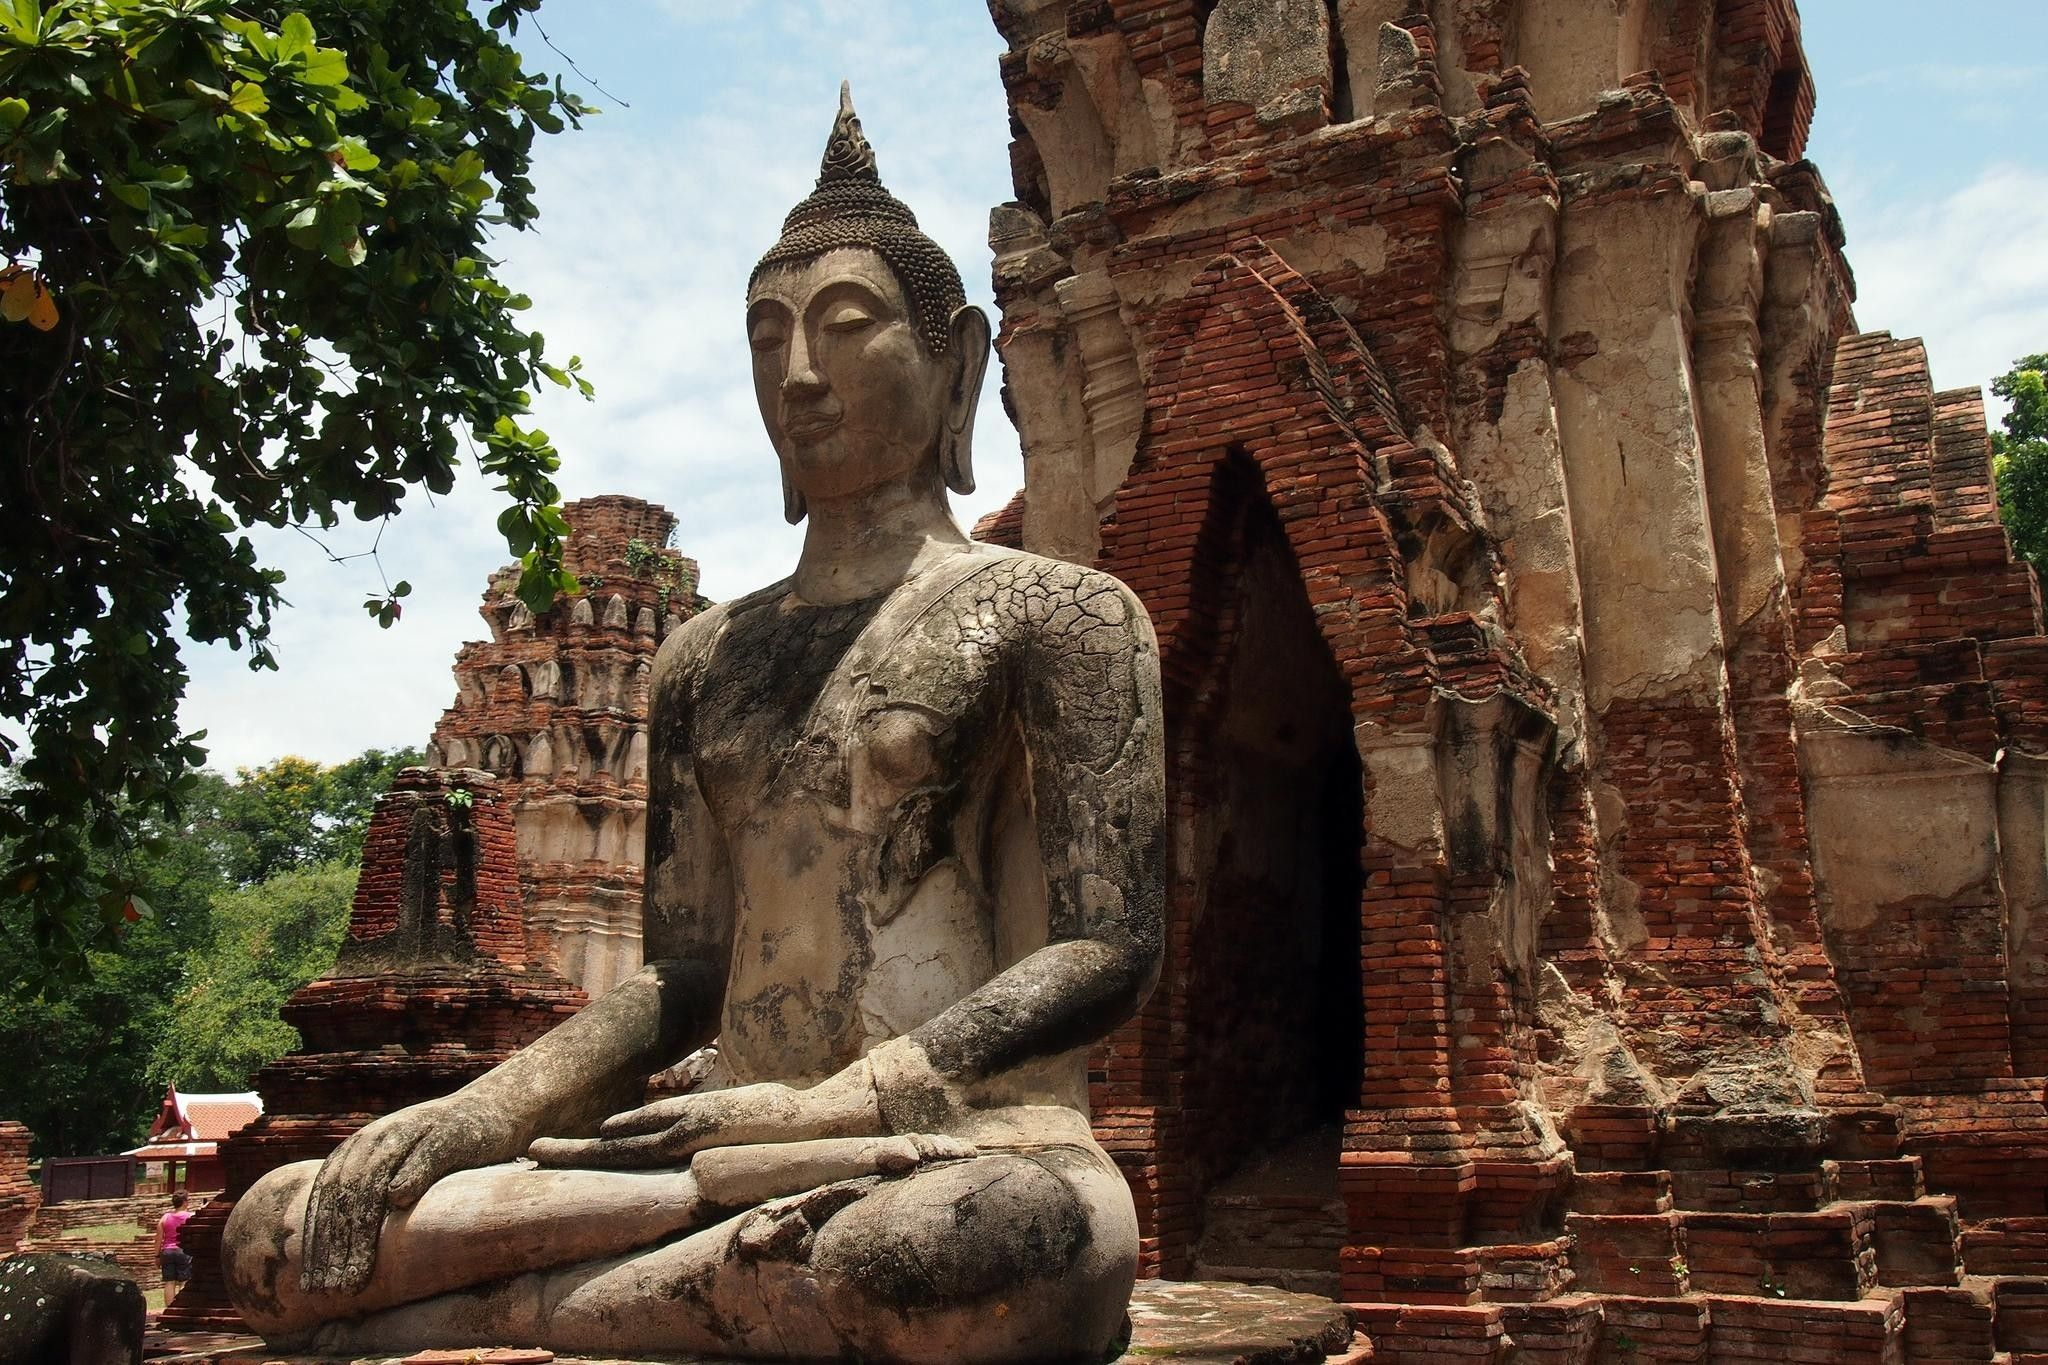 2048x1365 Landscapes trees ruins buddha buddhism thailand statues temple ...